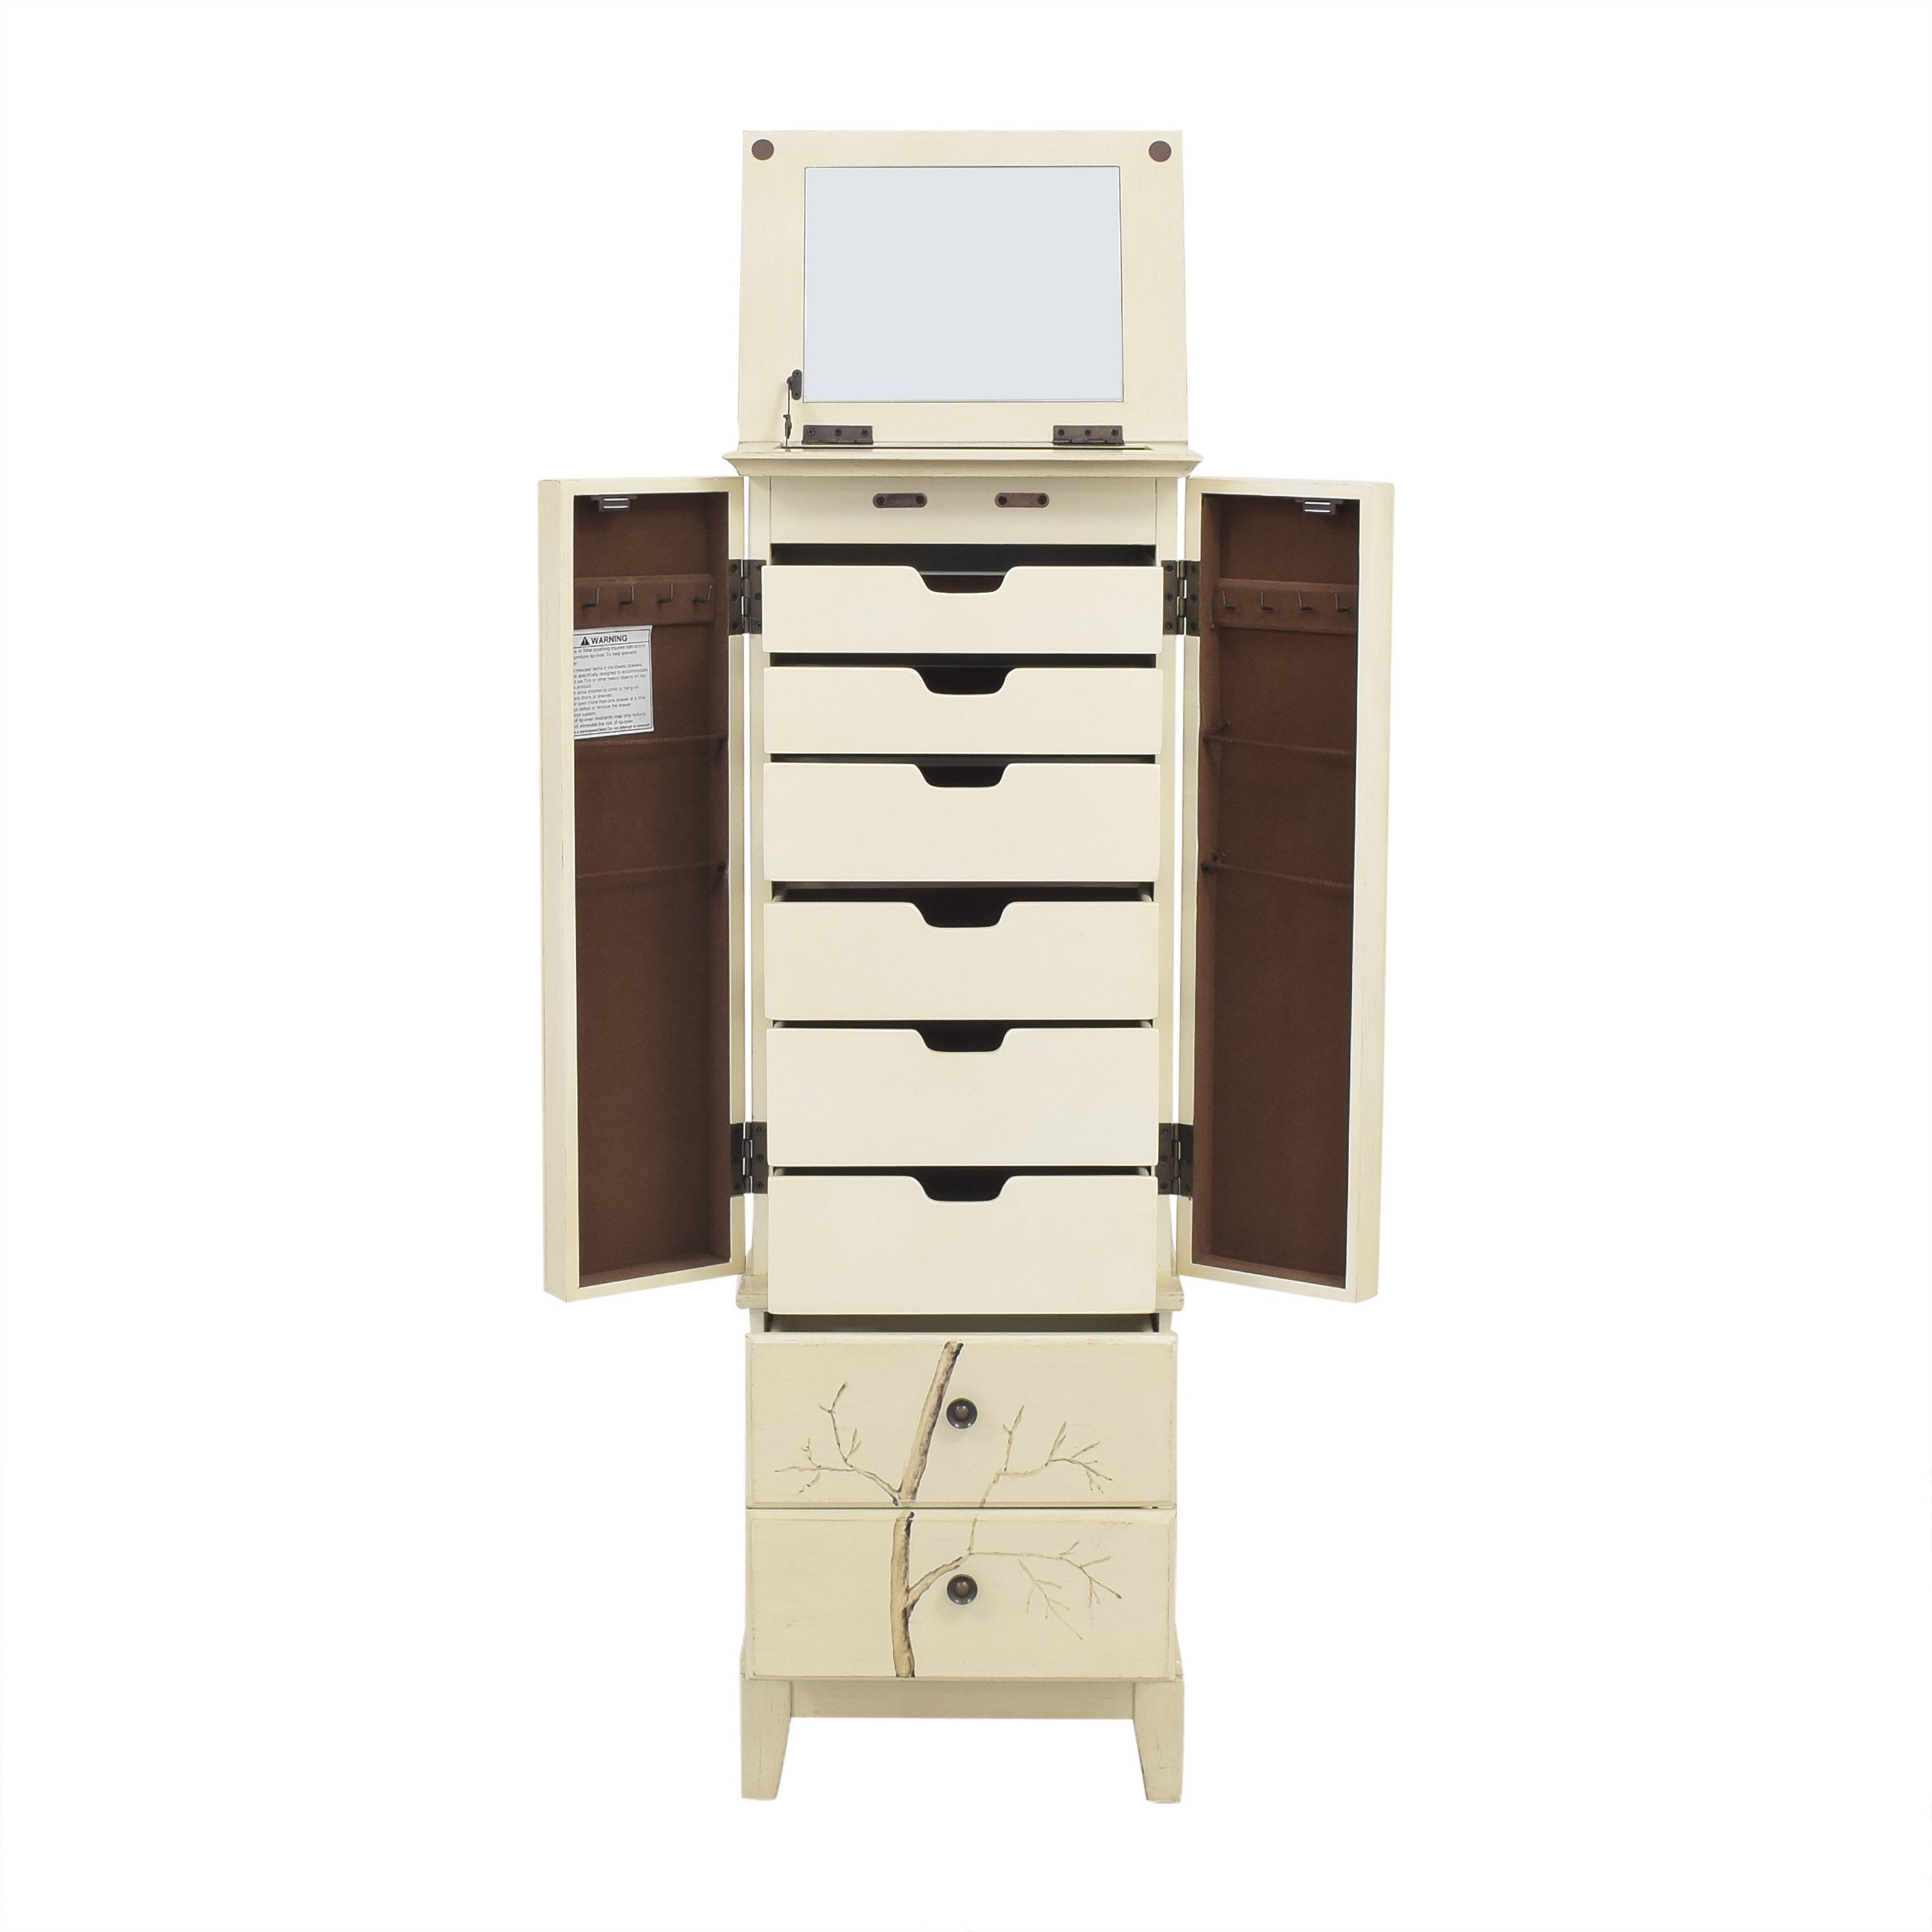 buy Home Decorators Collection Chirp Jewelry Armoire Home Decorators Collection